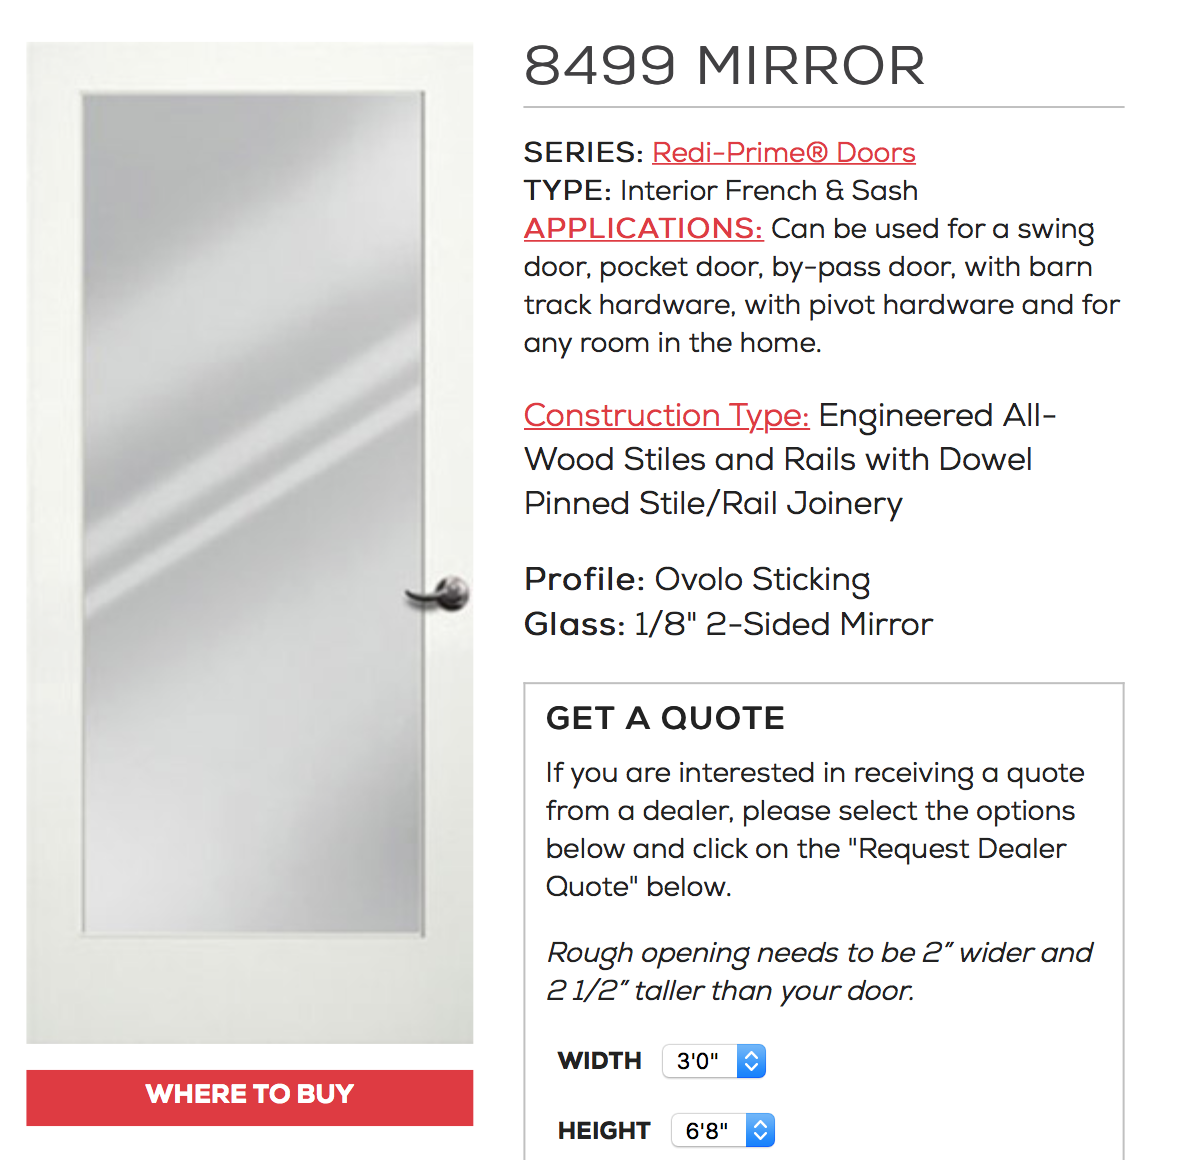 2 sided mirror -to install between master closet and ...